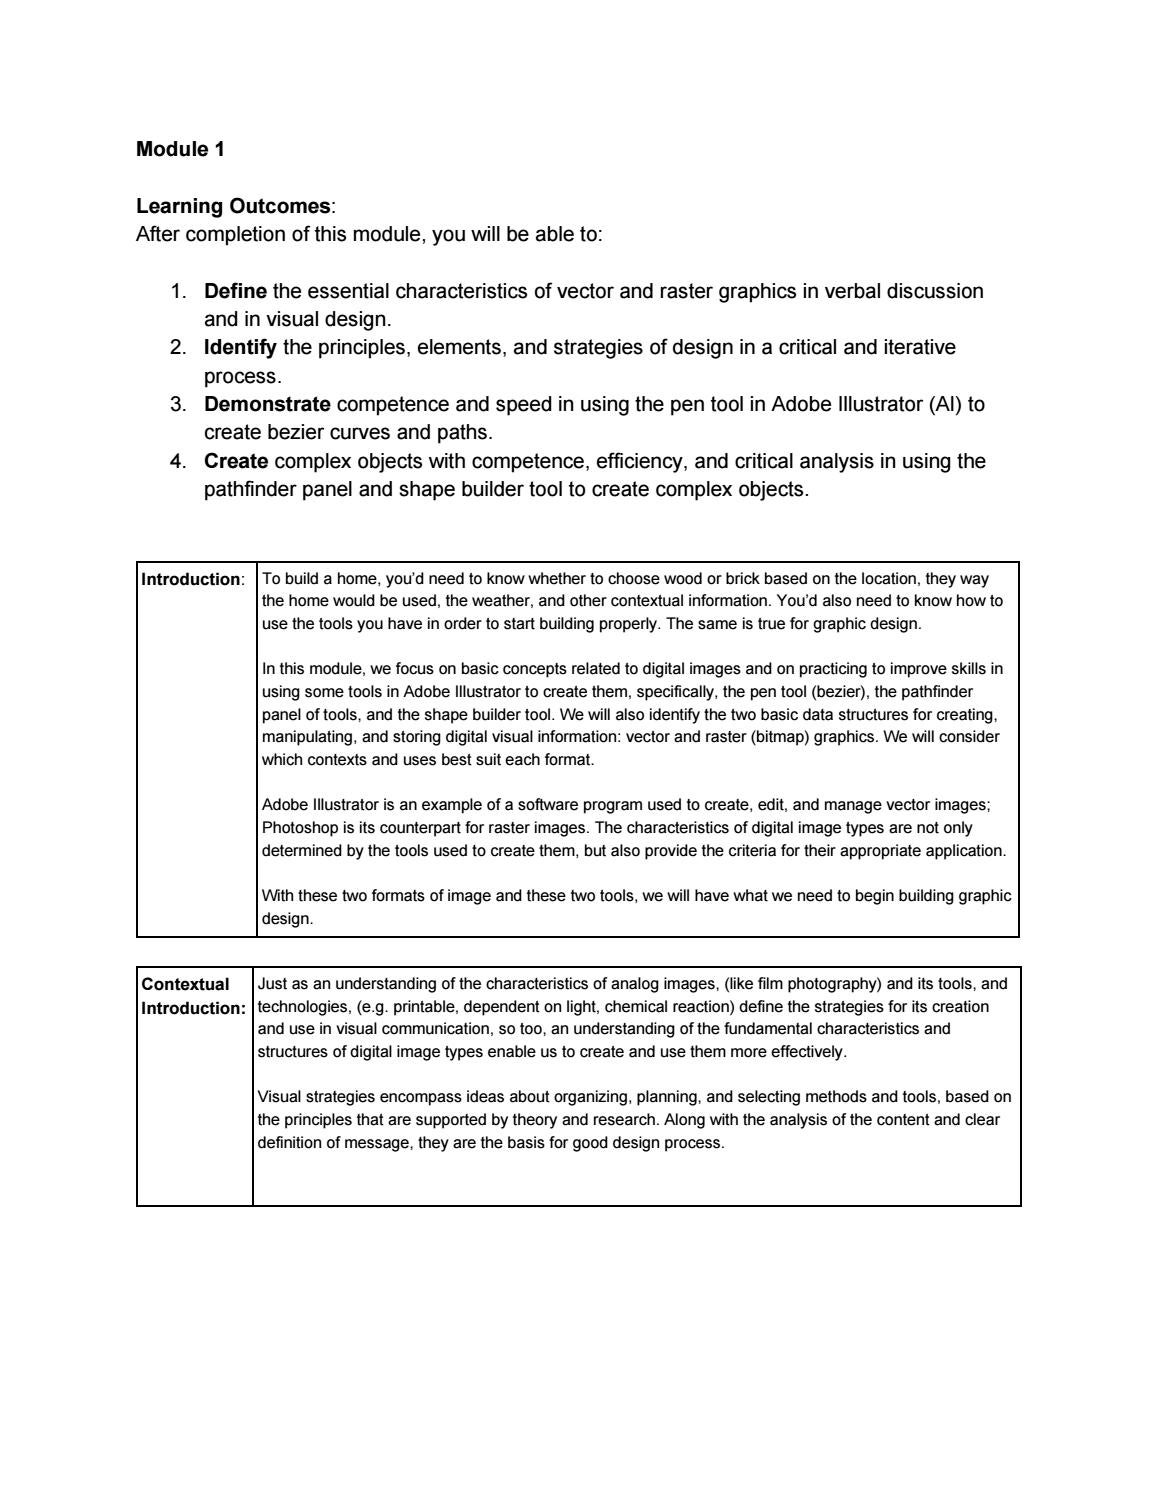 Module Learning Outcomes Assignment By Eileenmedinger Issuu